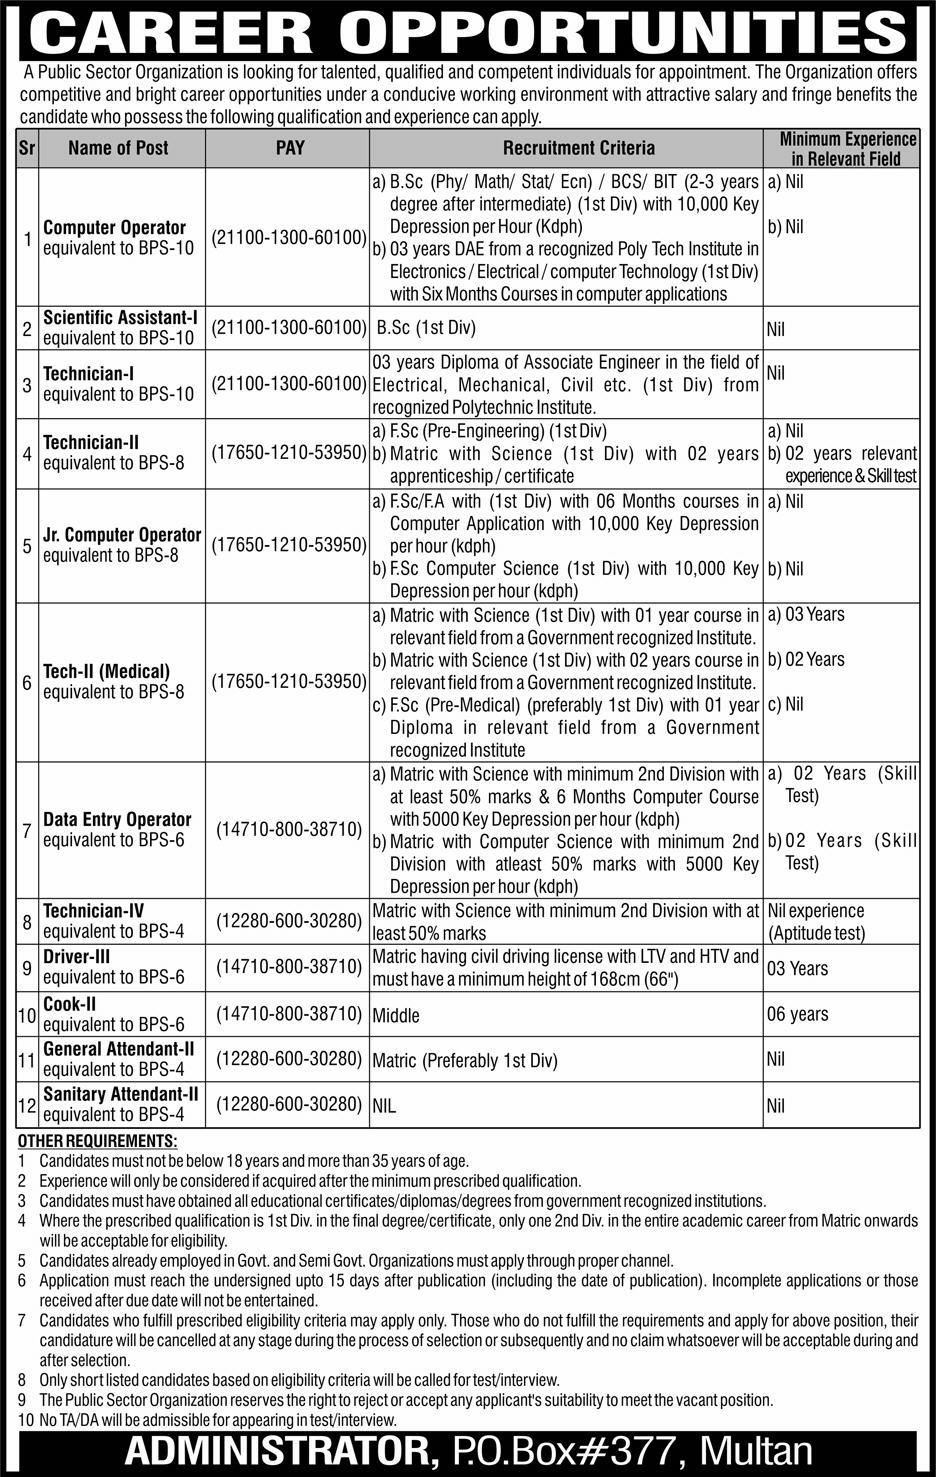 Pakistan Atomic Energy Commission PAEC Multan Jobs 2019 Job